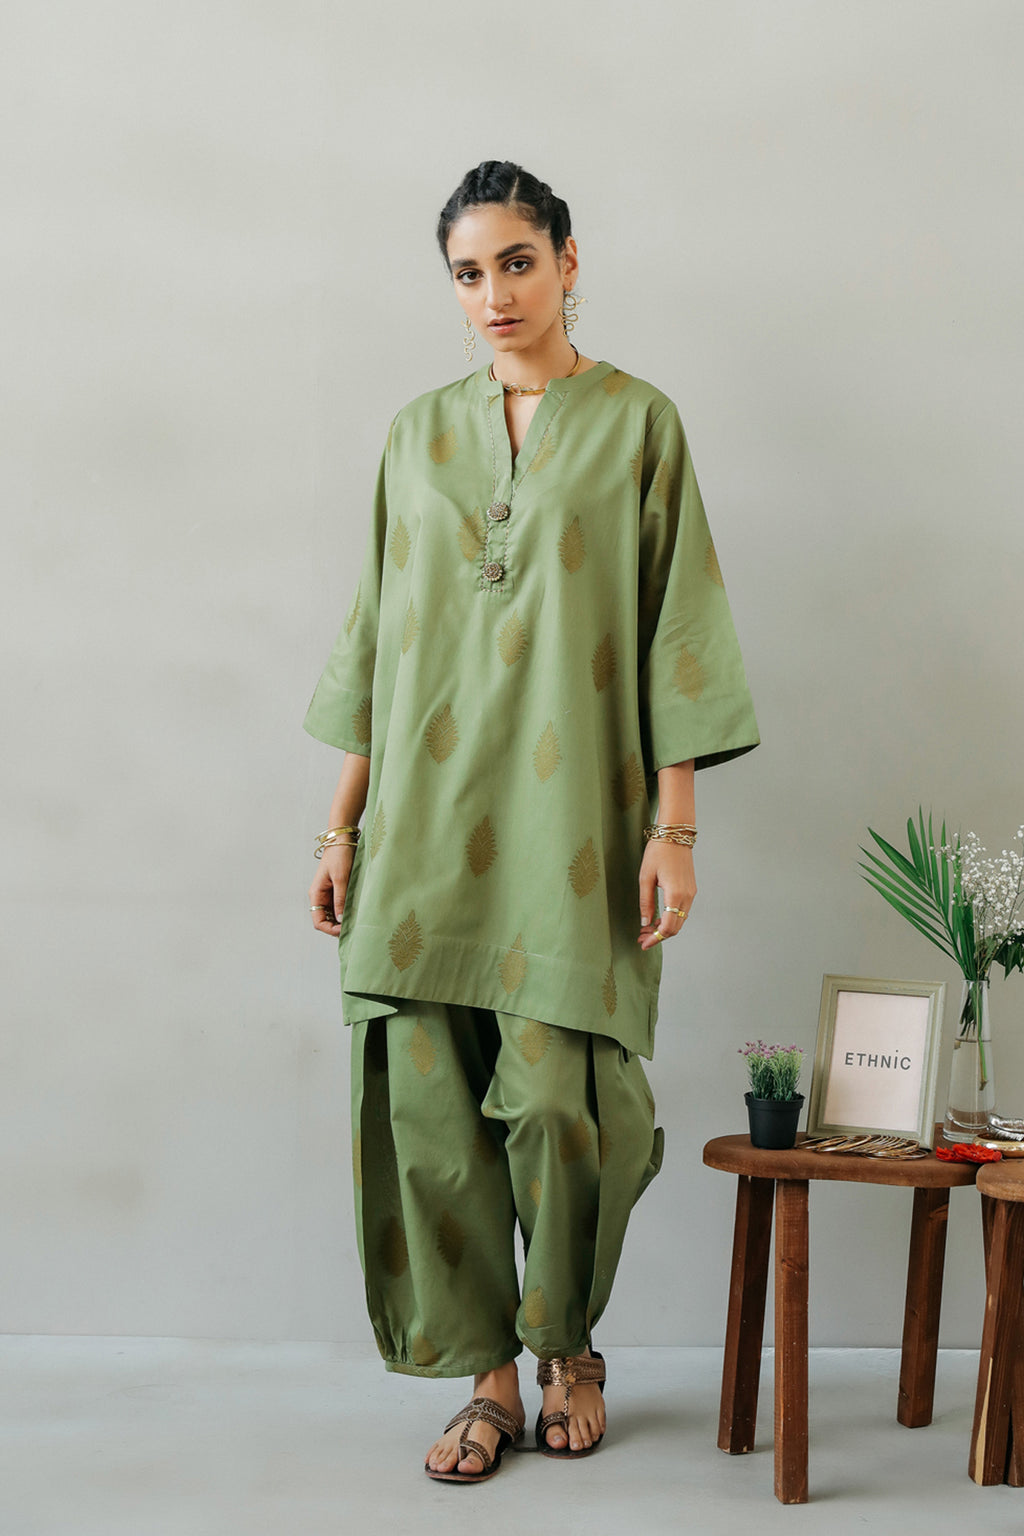 JACQUARD SUIT (WTR111368) - Ethnic by Outfitters